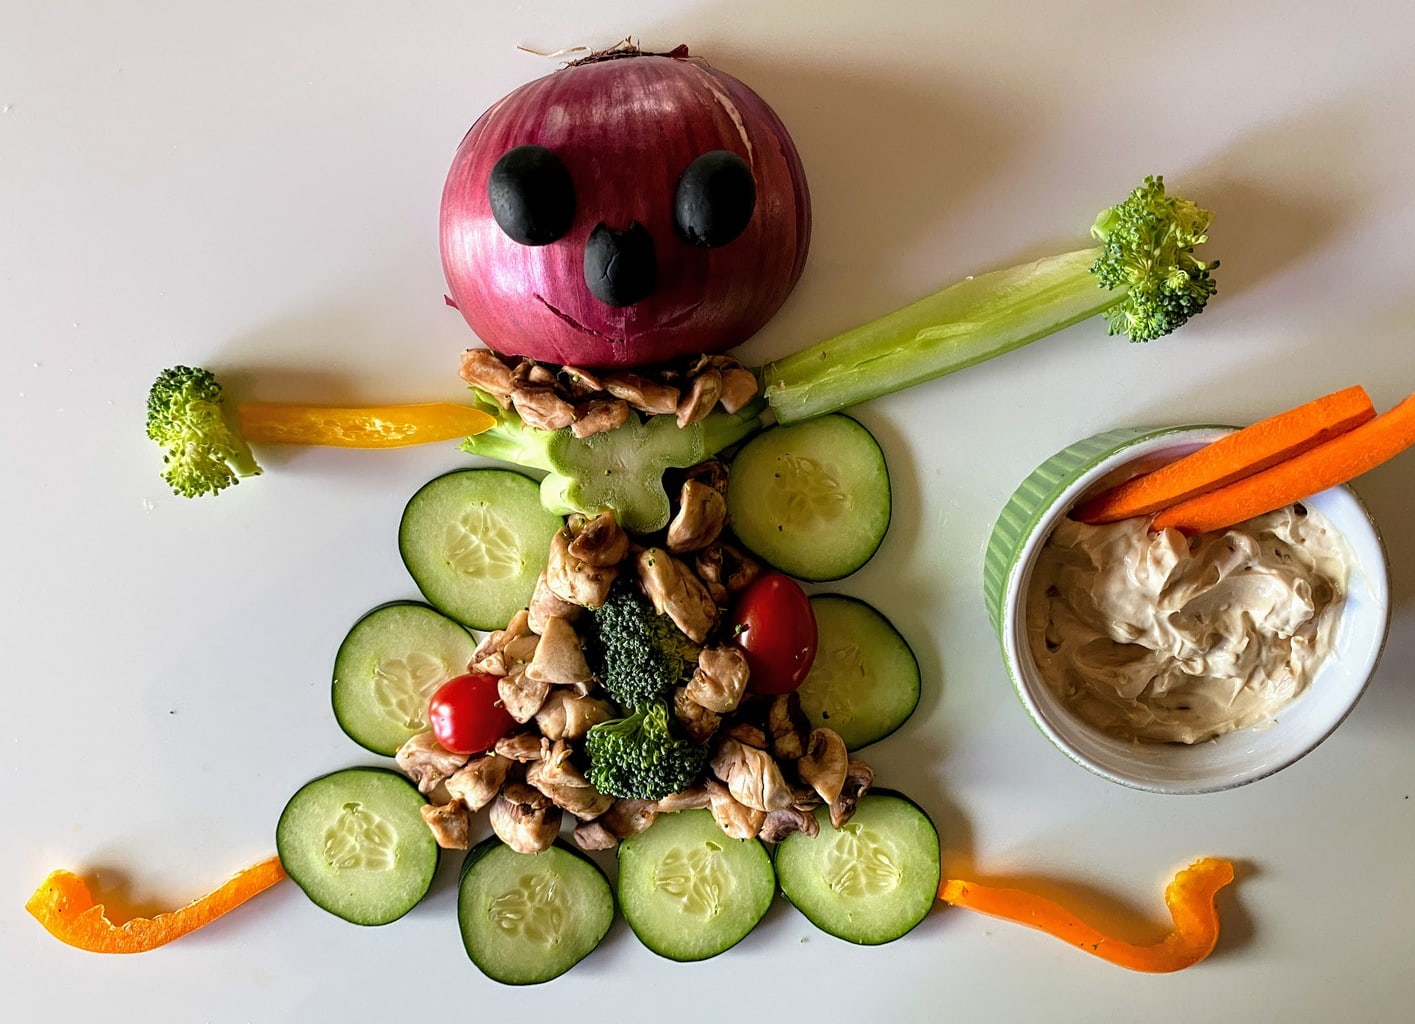 fun monster made out of veggies 2